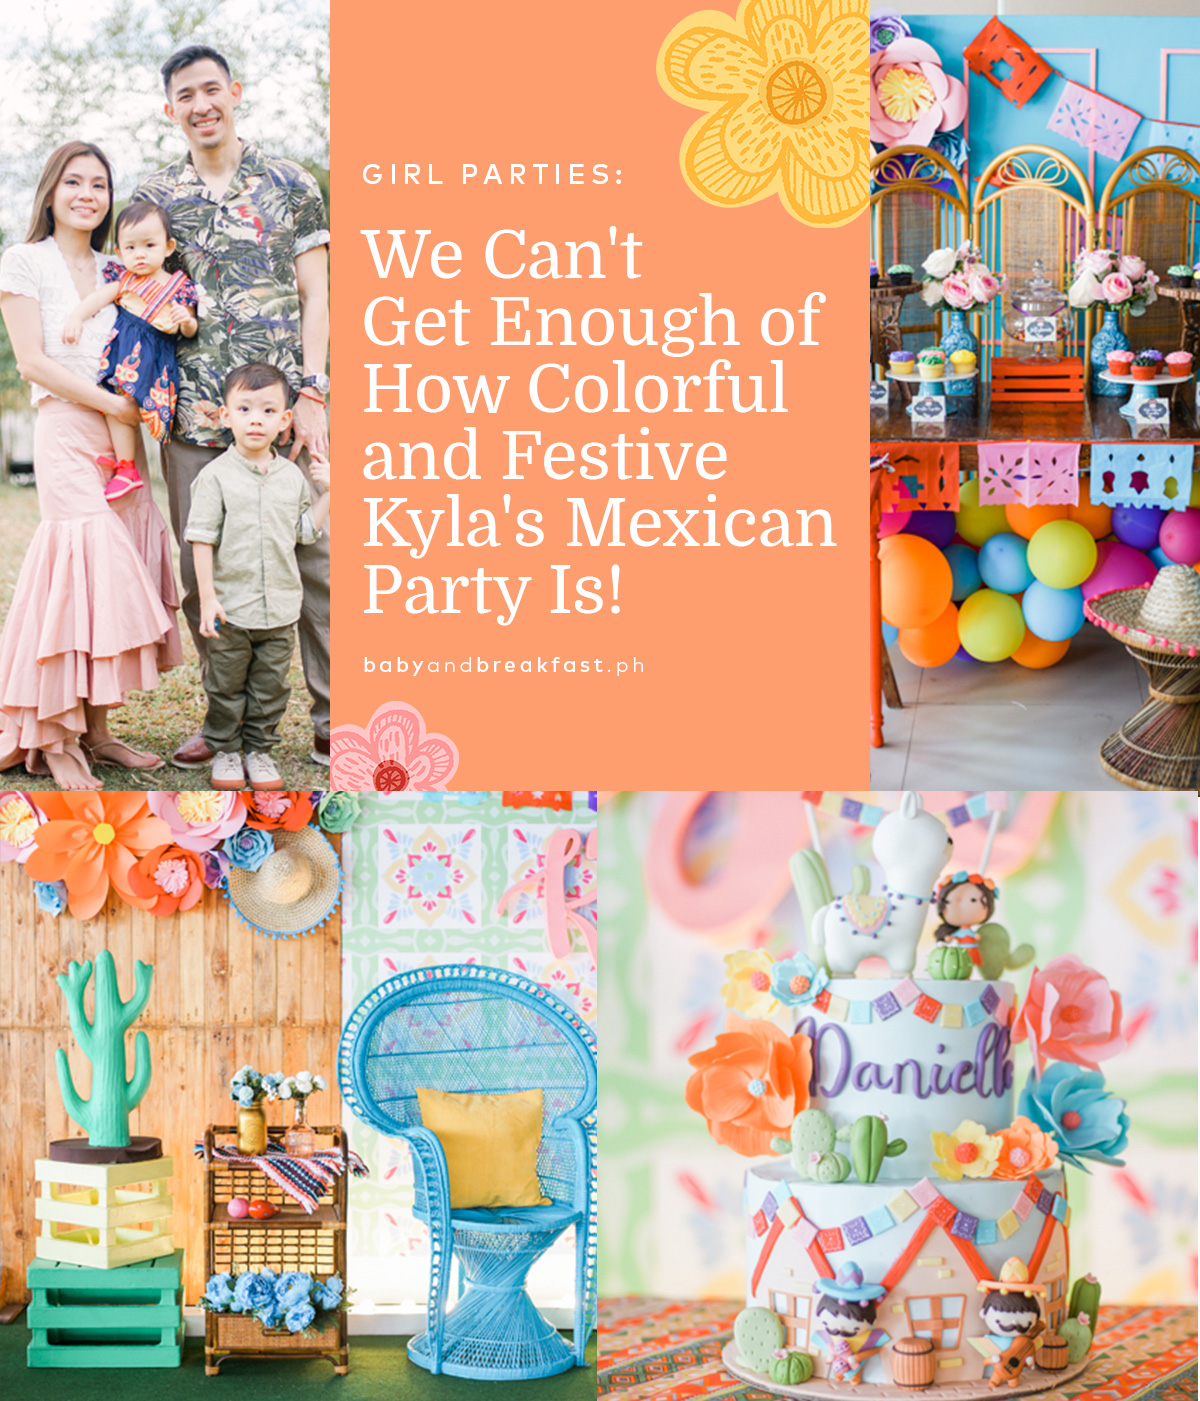 We Can't Get Enough of How Colorful and Festive Kyla's Mexican Party Is!